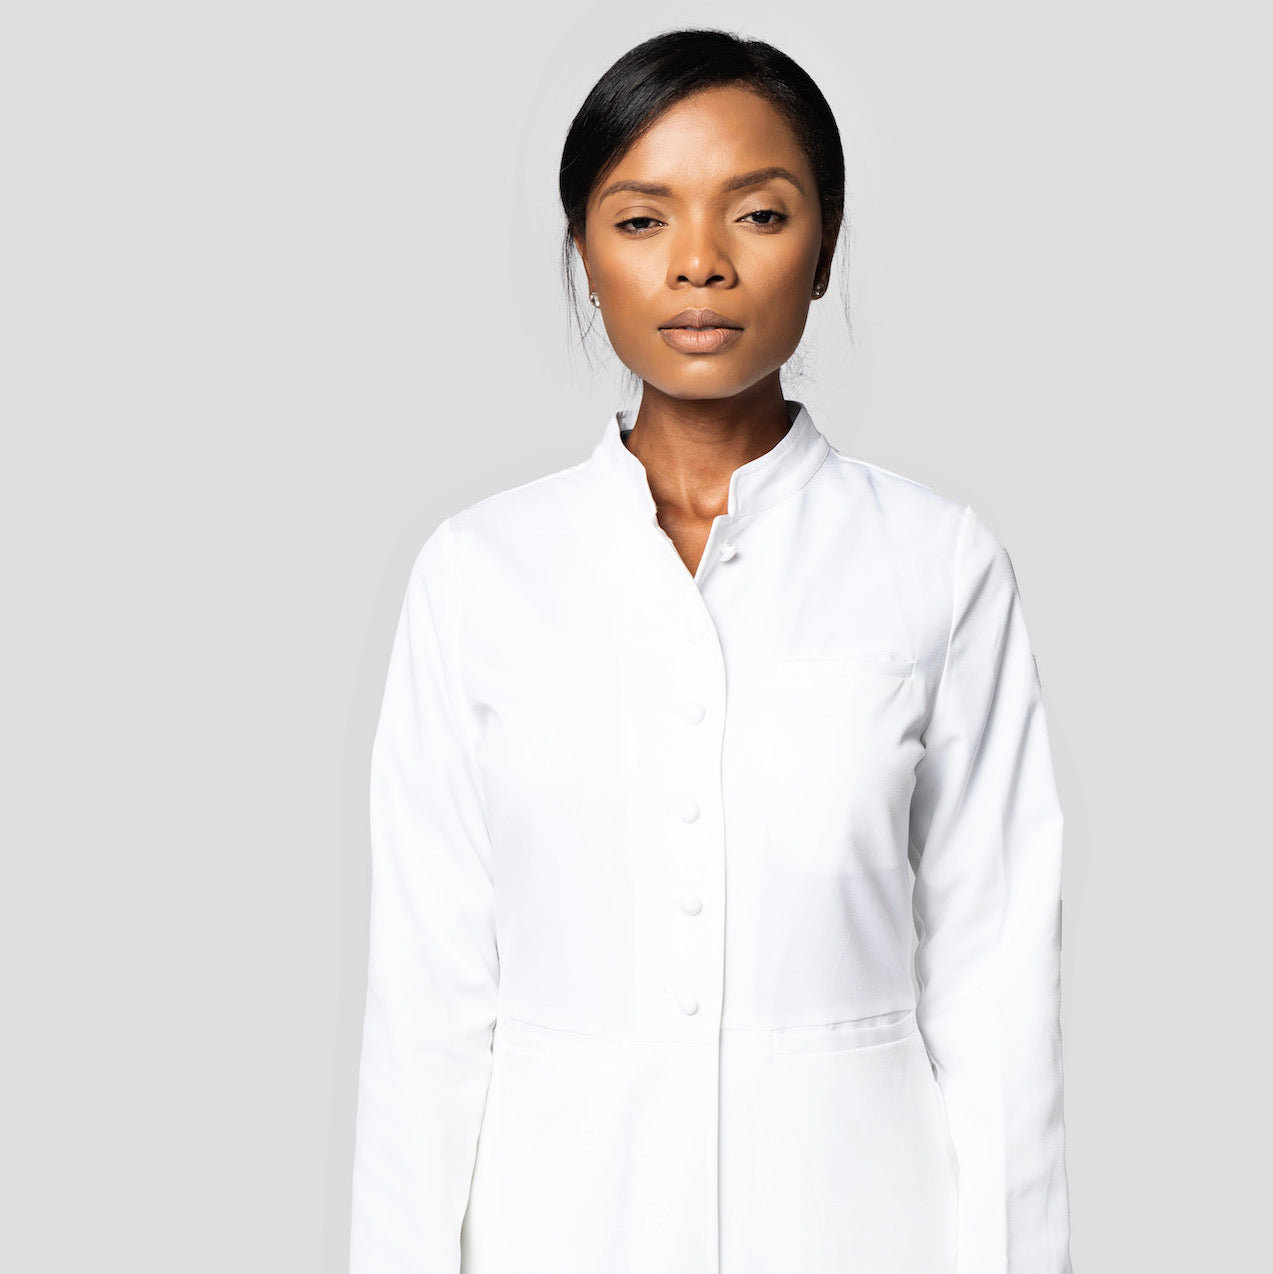 INTRODUCING SIGNATURE COLLECTION LAB COATS